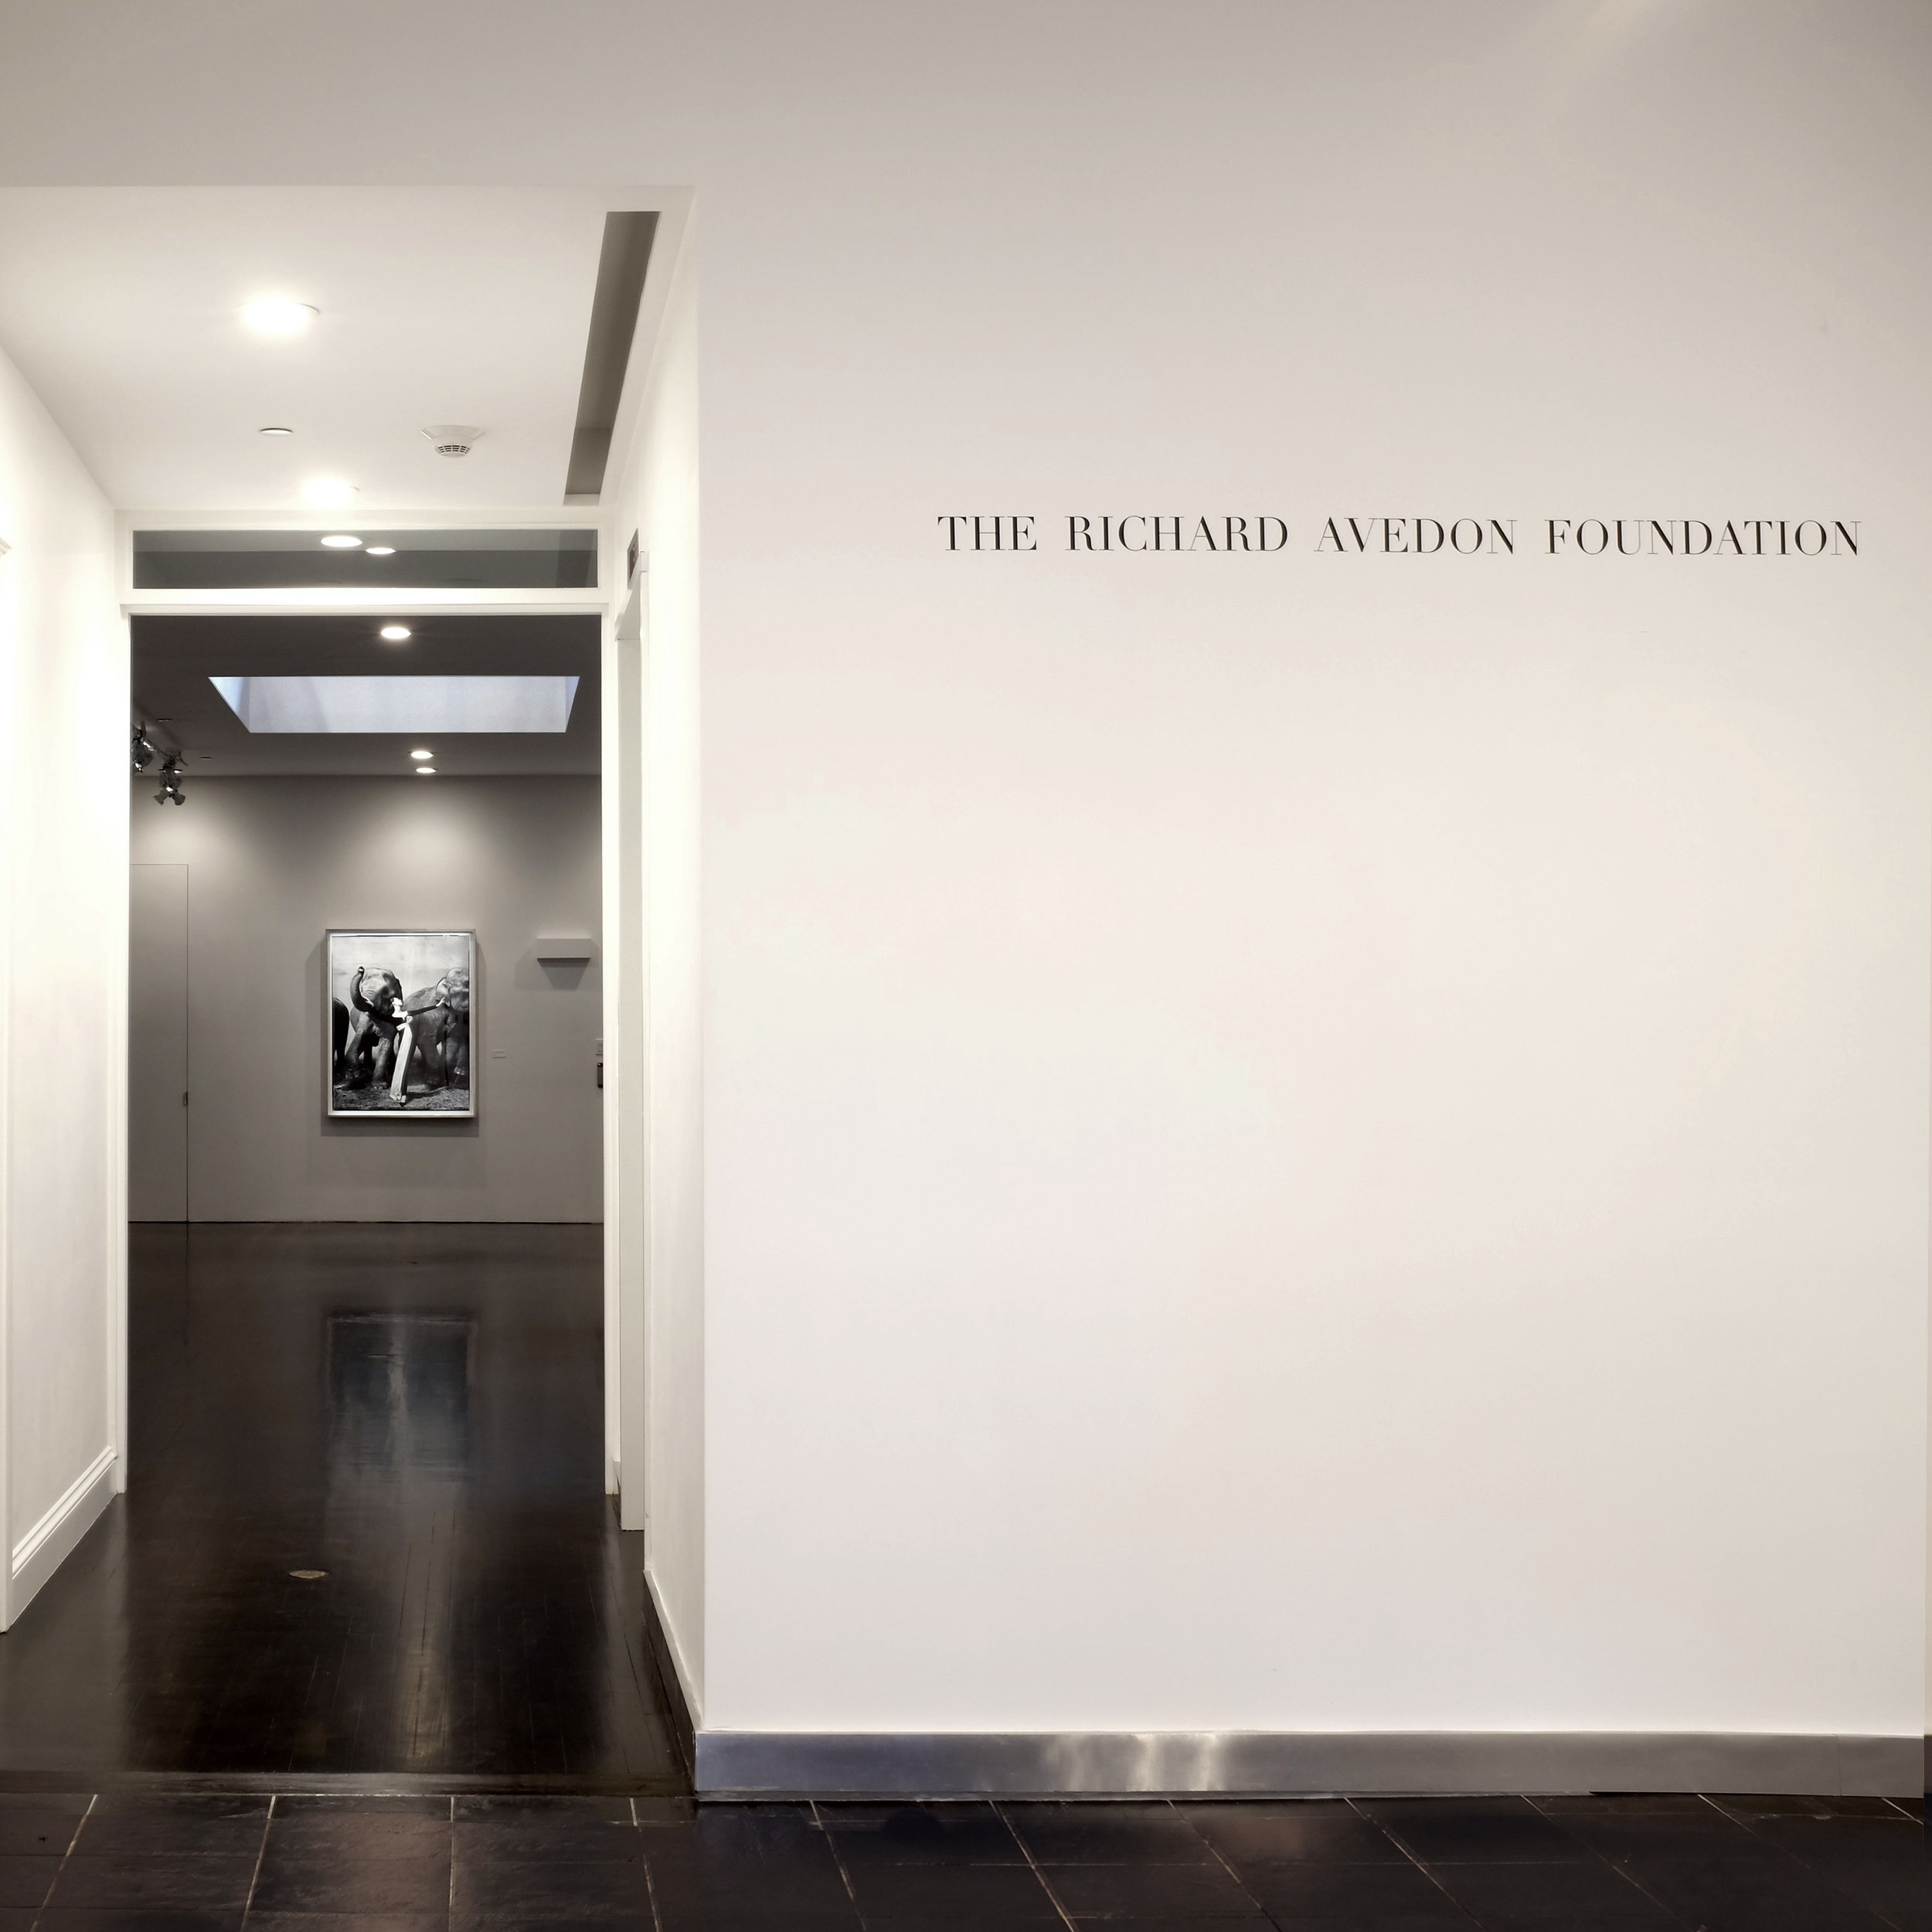 2016 10 11 Richard Avedon Foundation install.jpg